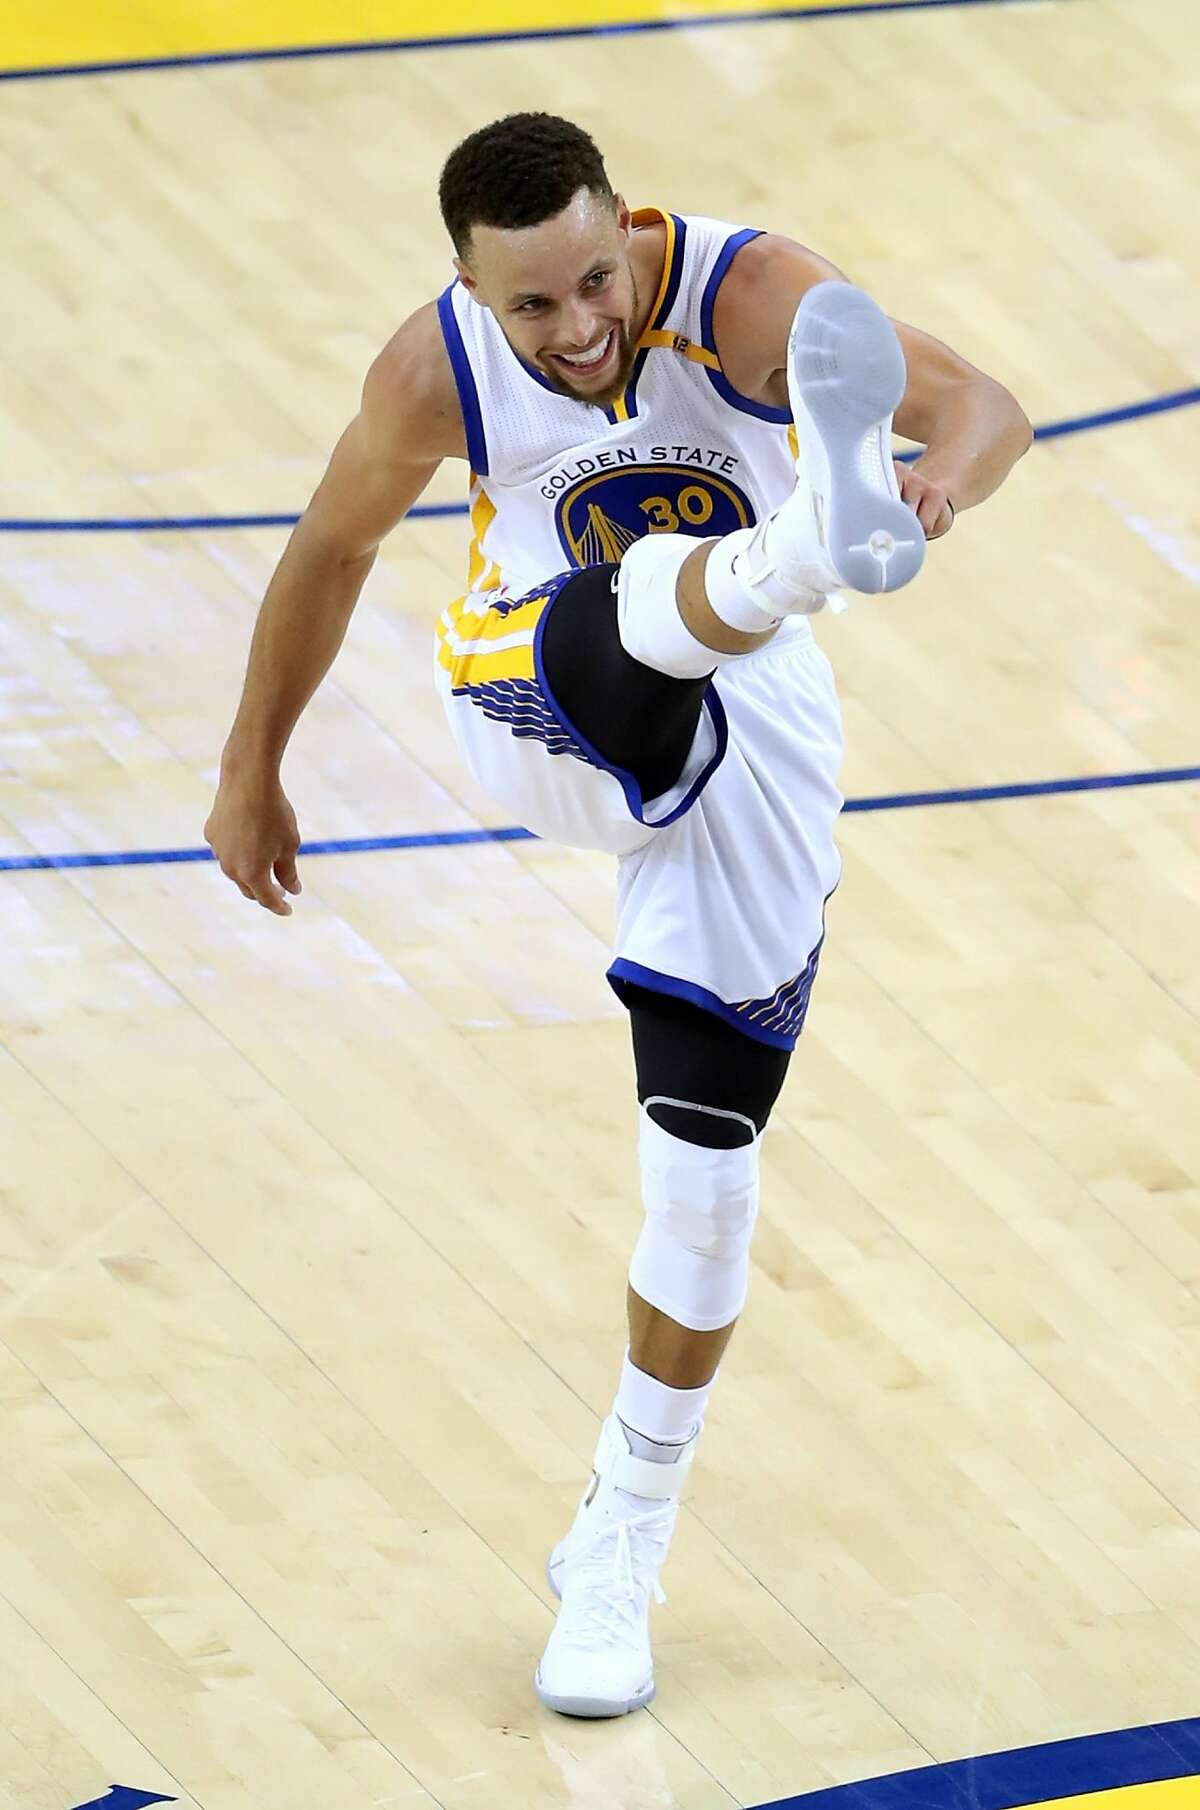 Golden State Warriors' Stephen Curry celebrates a successful 3-pointer against Cleveland Cavaliers in 3rd quarter during Game 1 of the NBA Finals at Oracle Arena in Oakland, Calif., on Thursday, June 1, 2017.